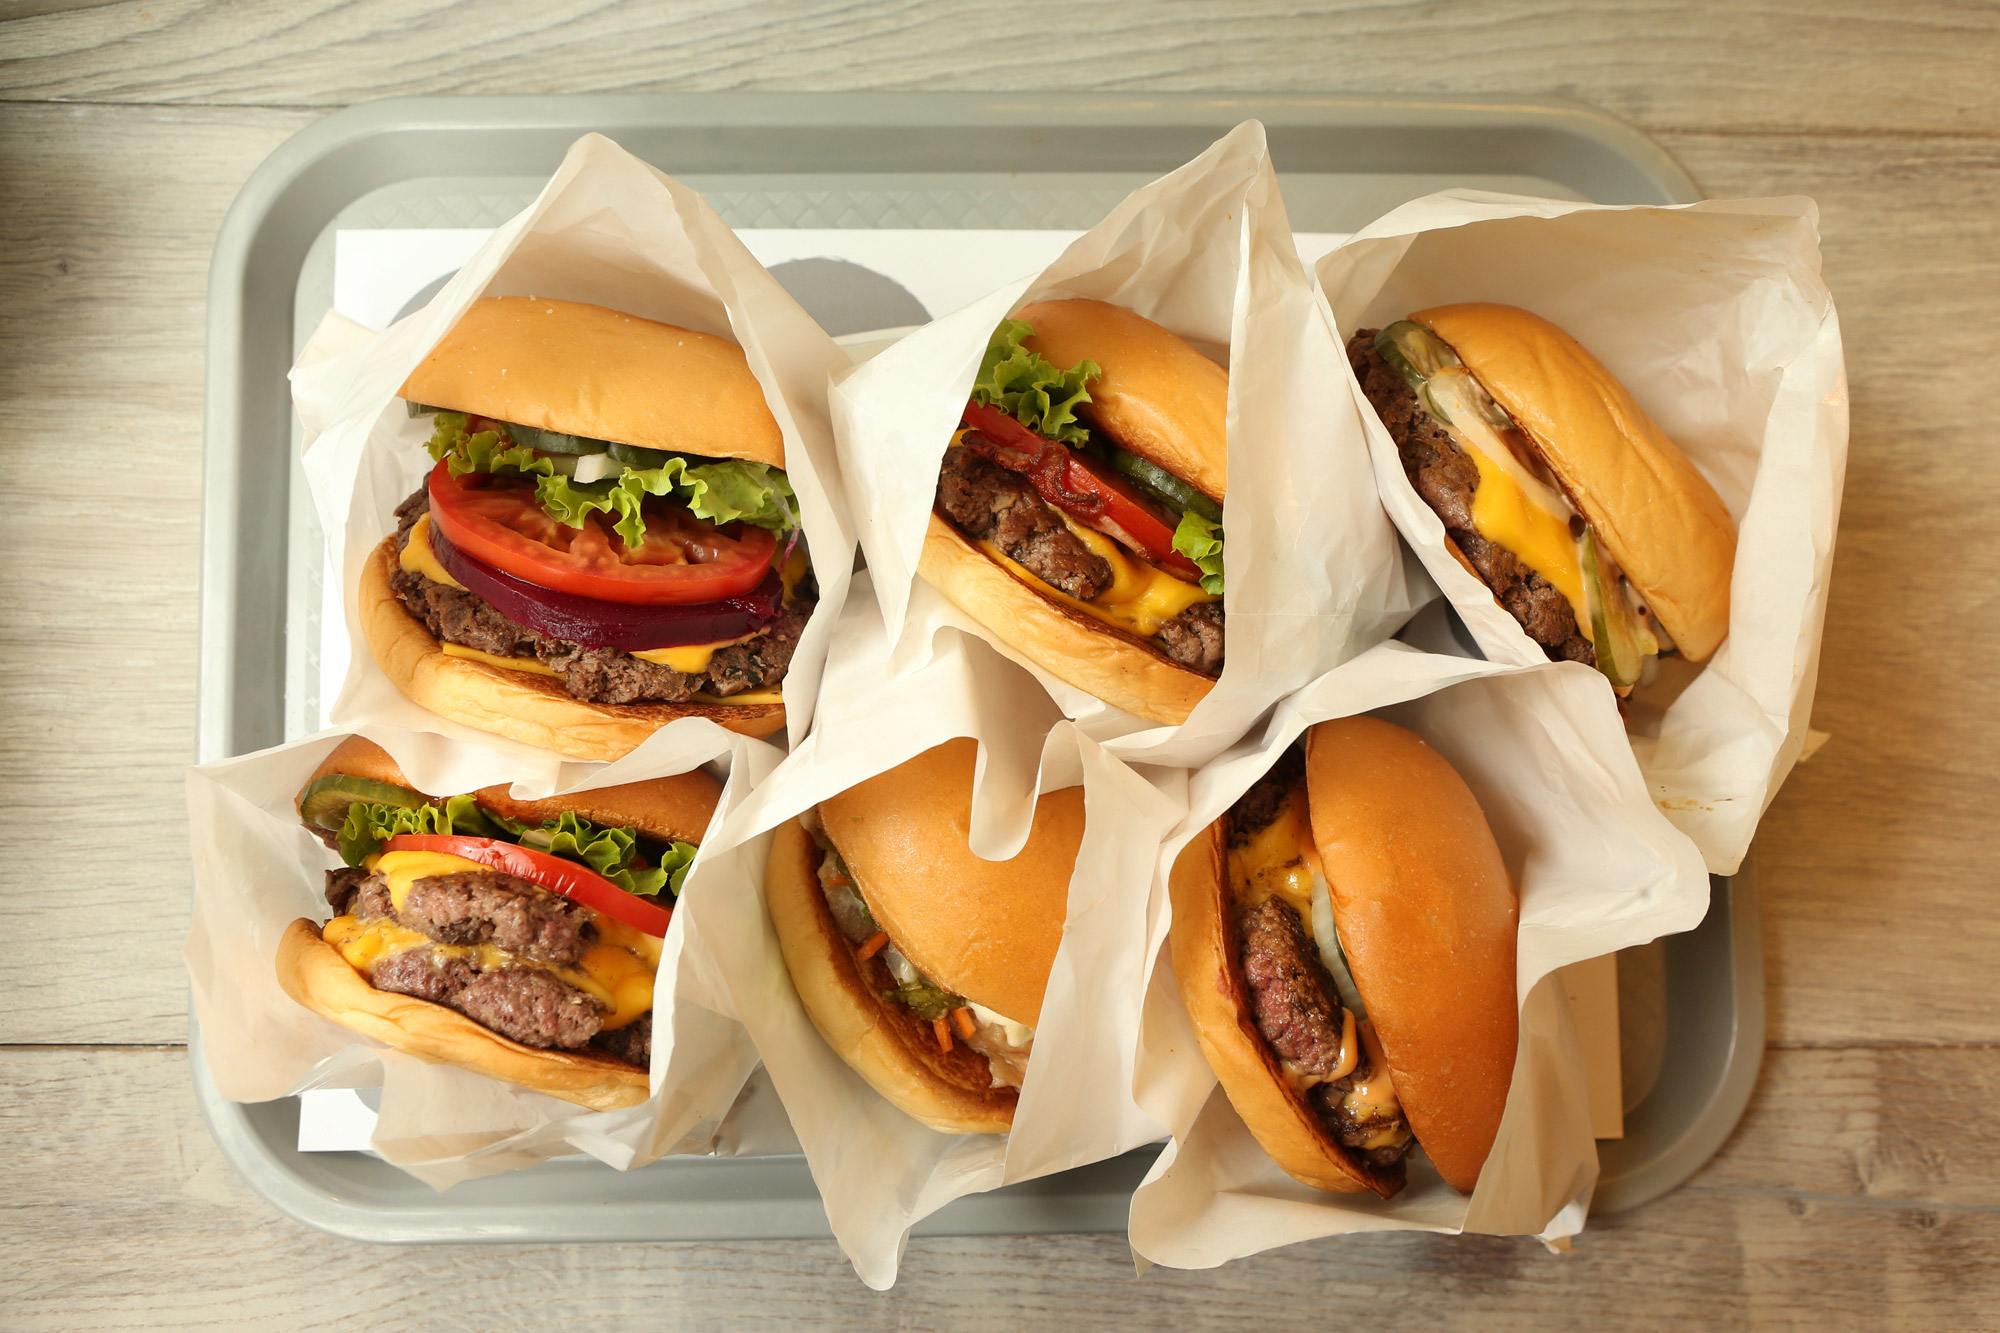 Burger Project%E2%80%99s second Melbourne outlet at Chadstone is now open